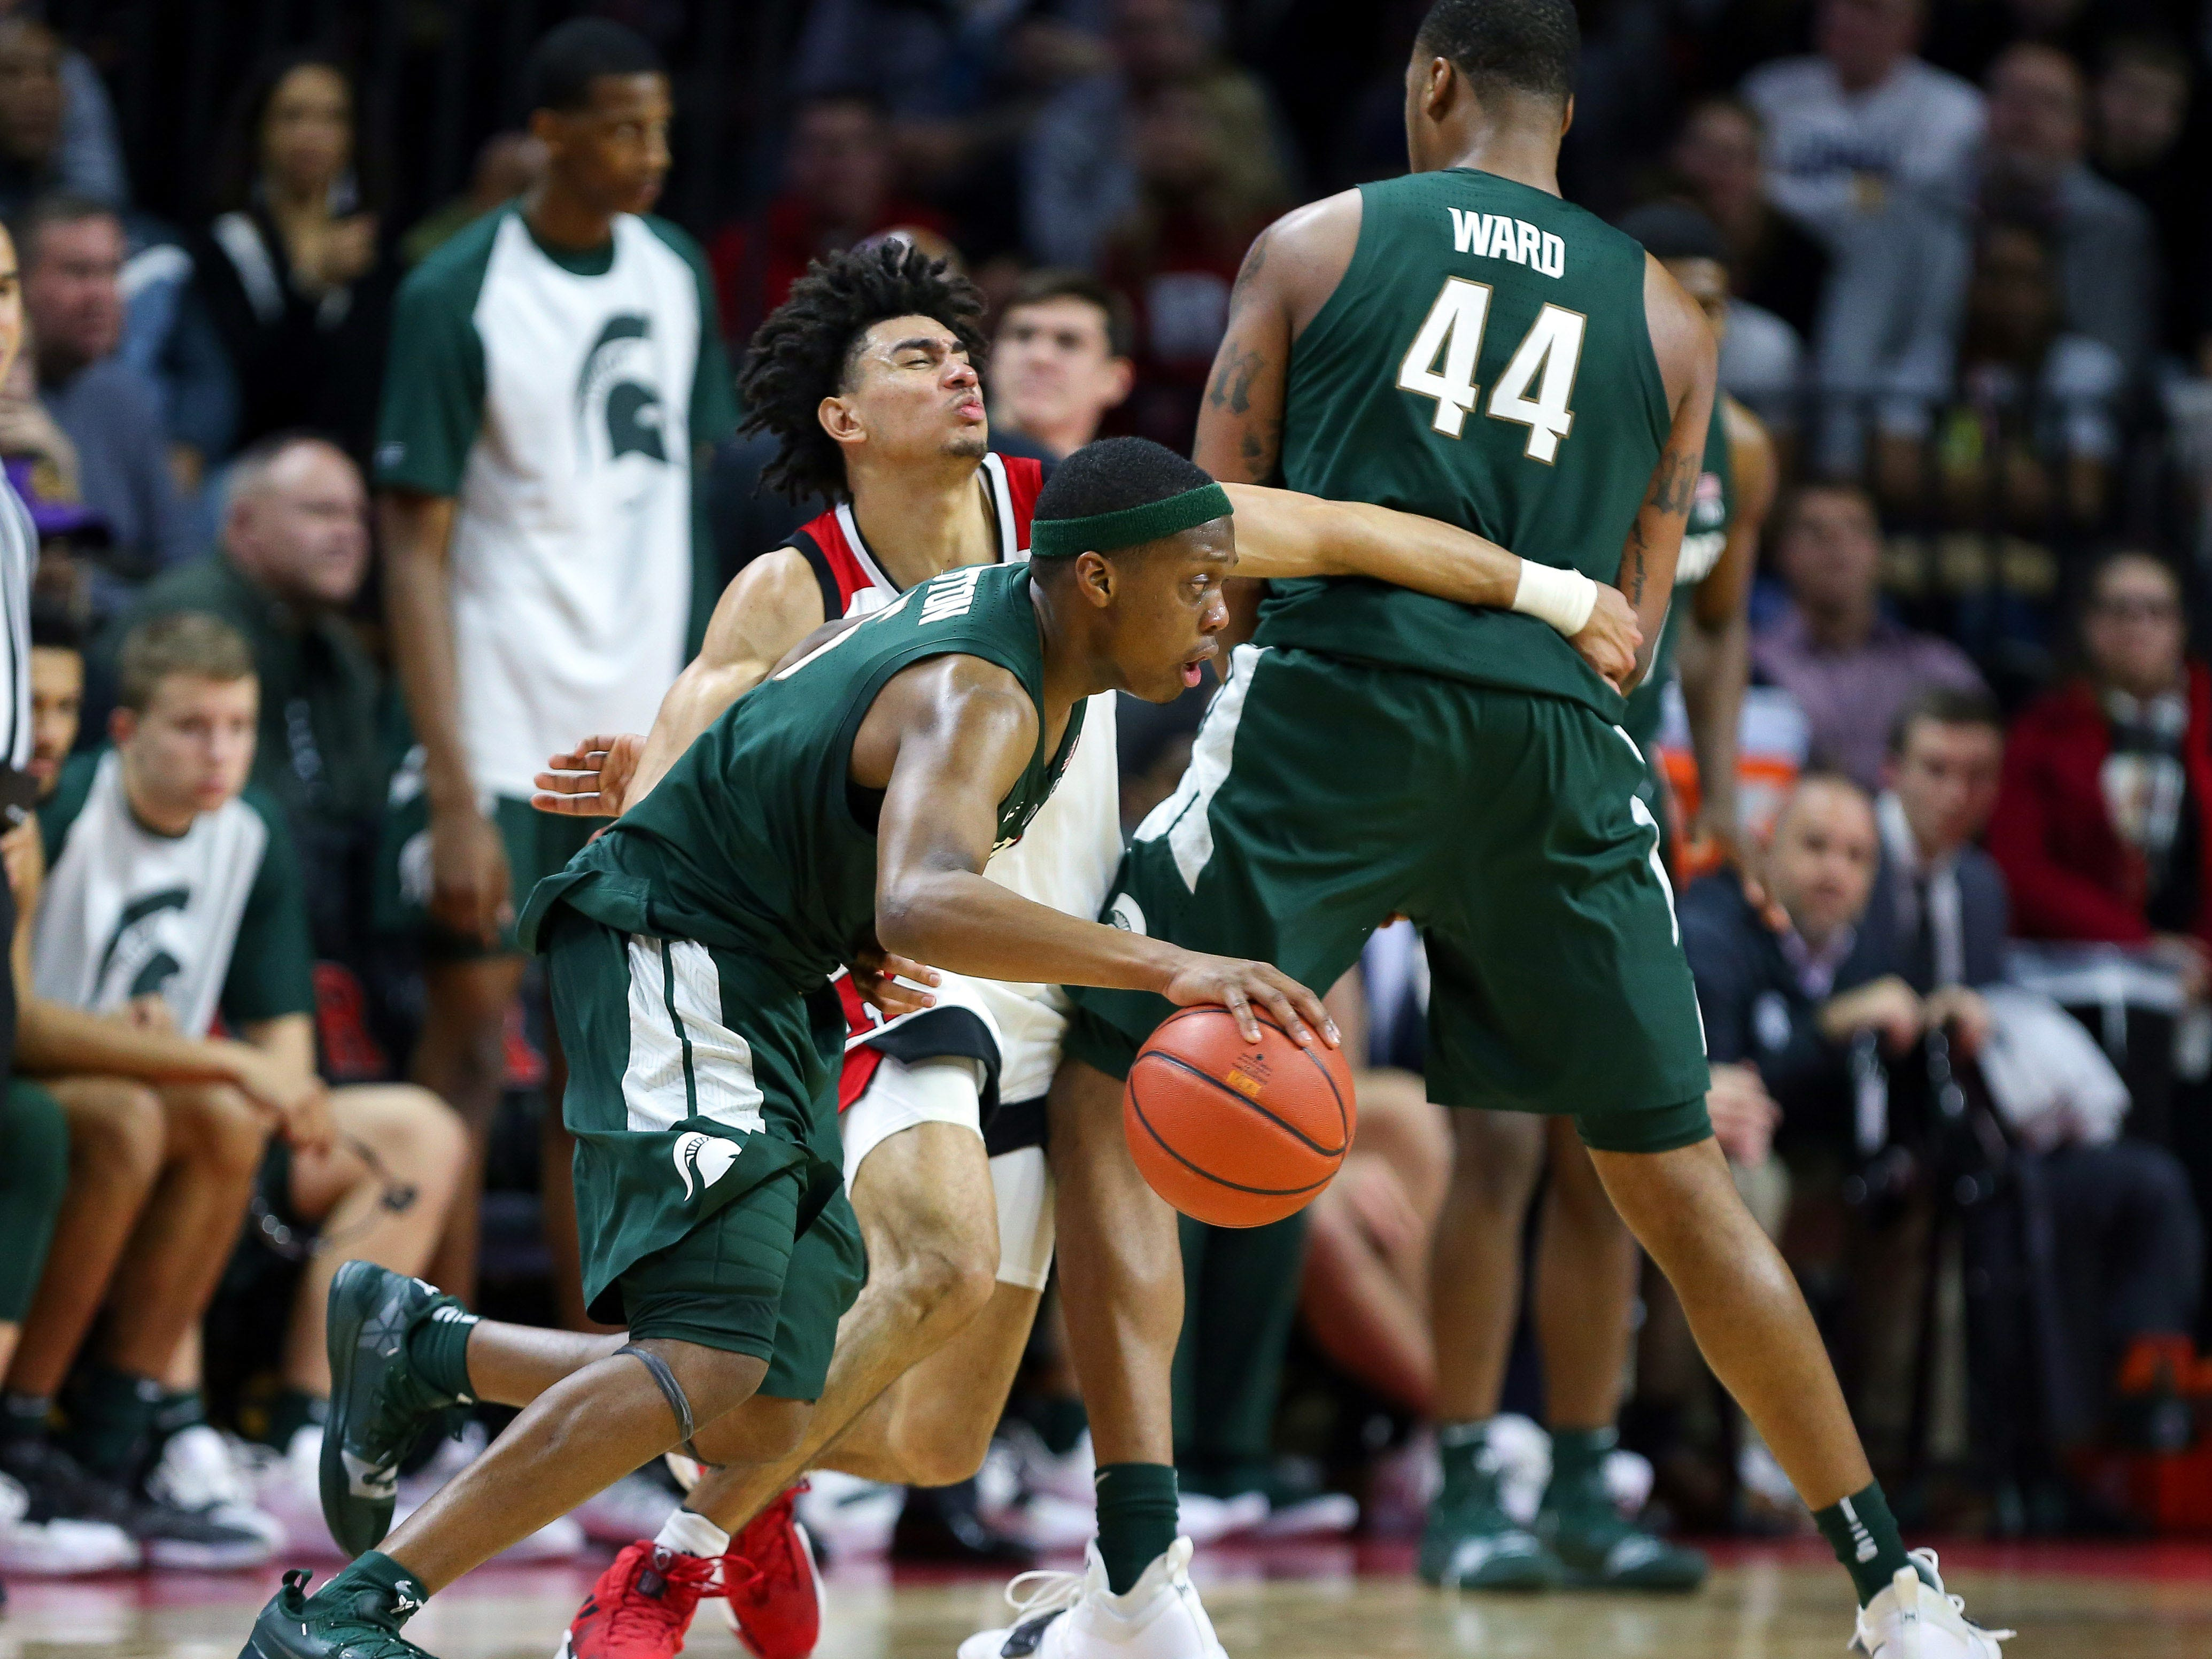 Rutgers Scarlet Knights guard Geo Baker (0) is screened by Michigan State Spartans forward Nick Ward (44) as guard Cassius Winston (5) dribbles during the second half at Rutgers Athletic Center (RAC).